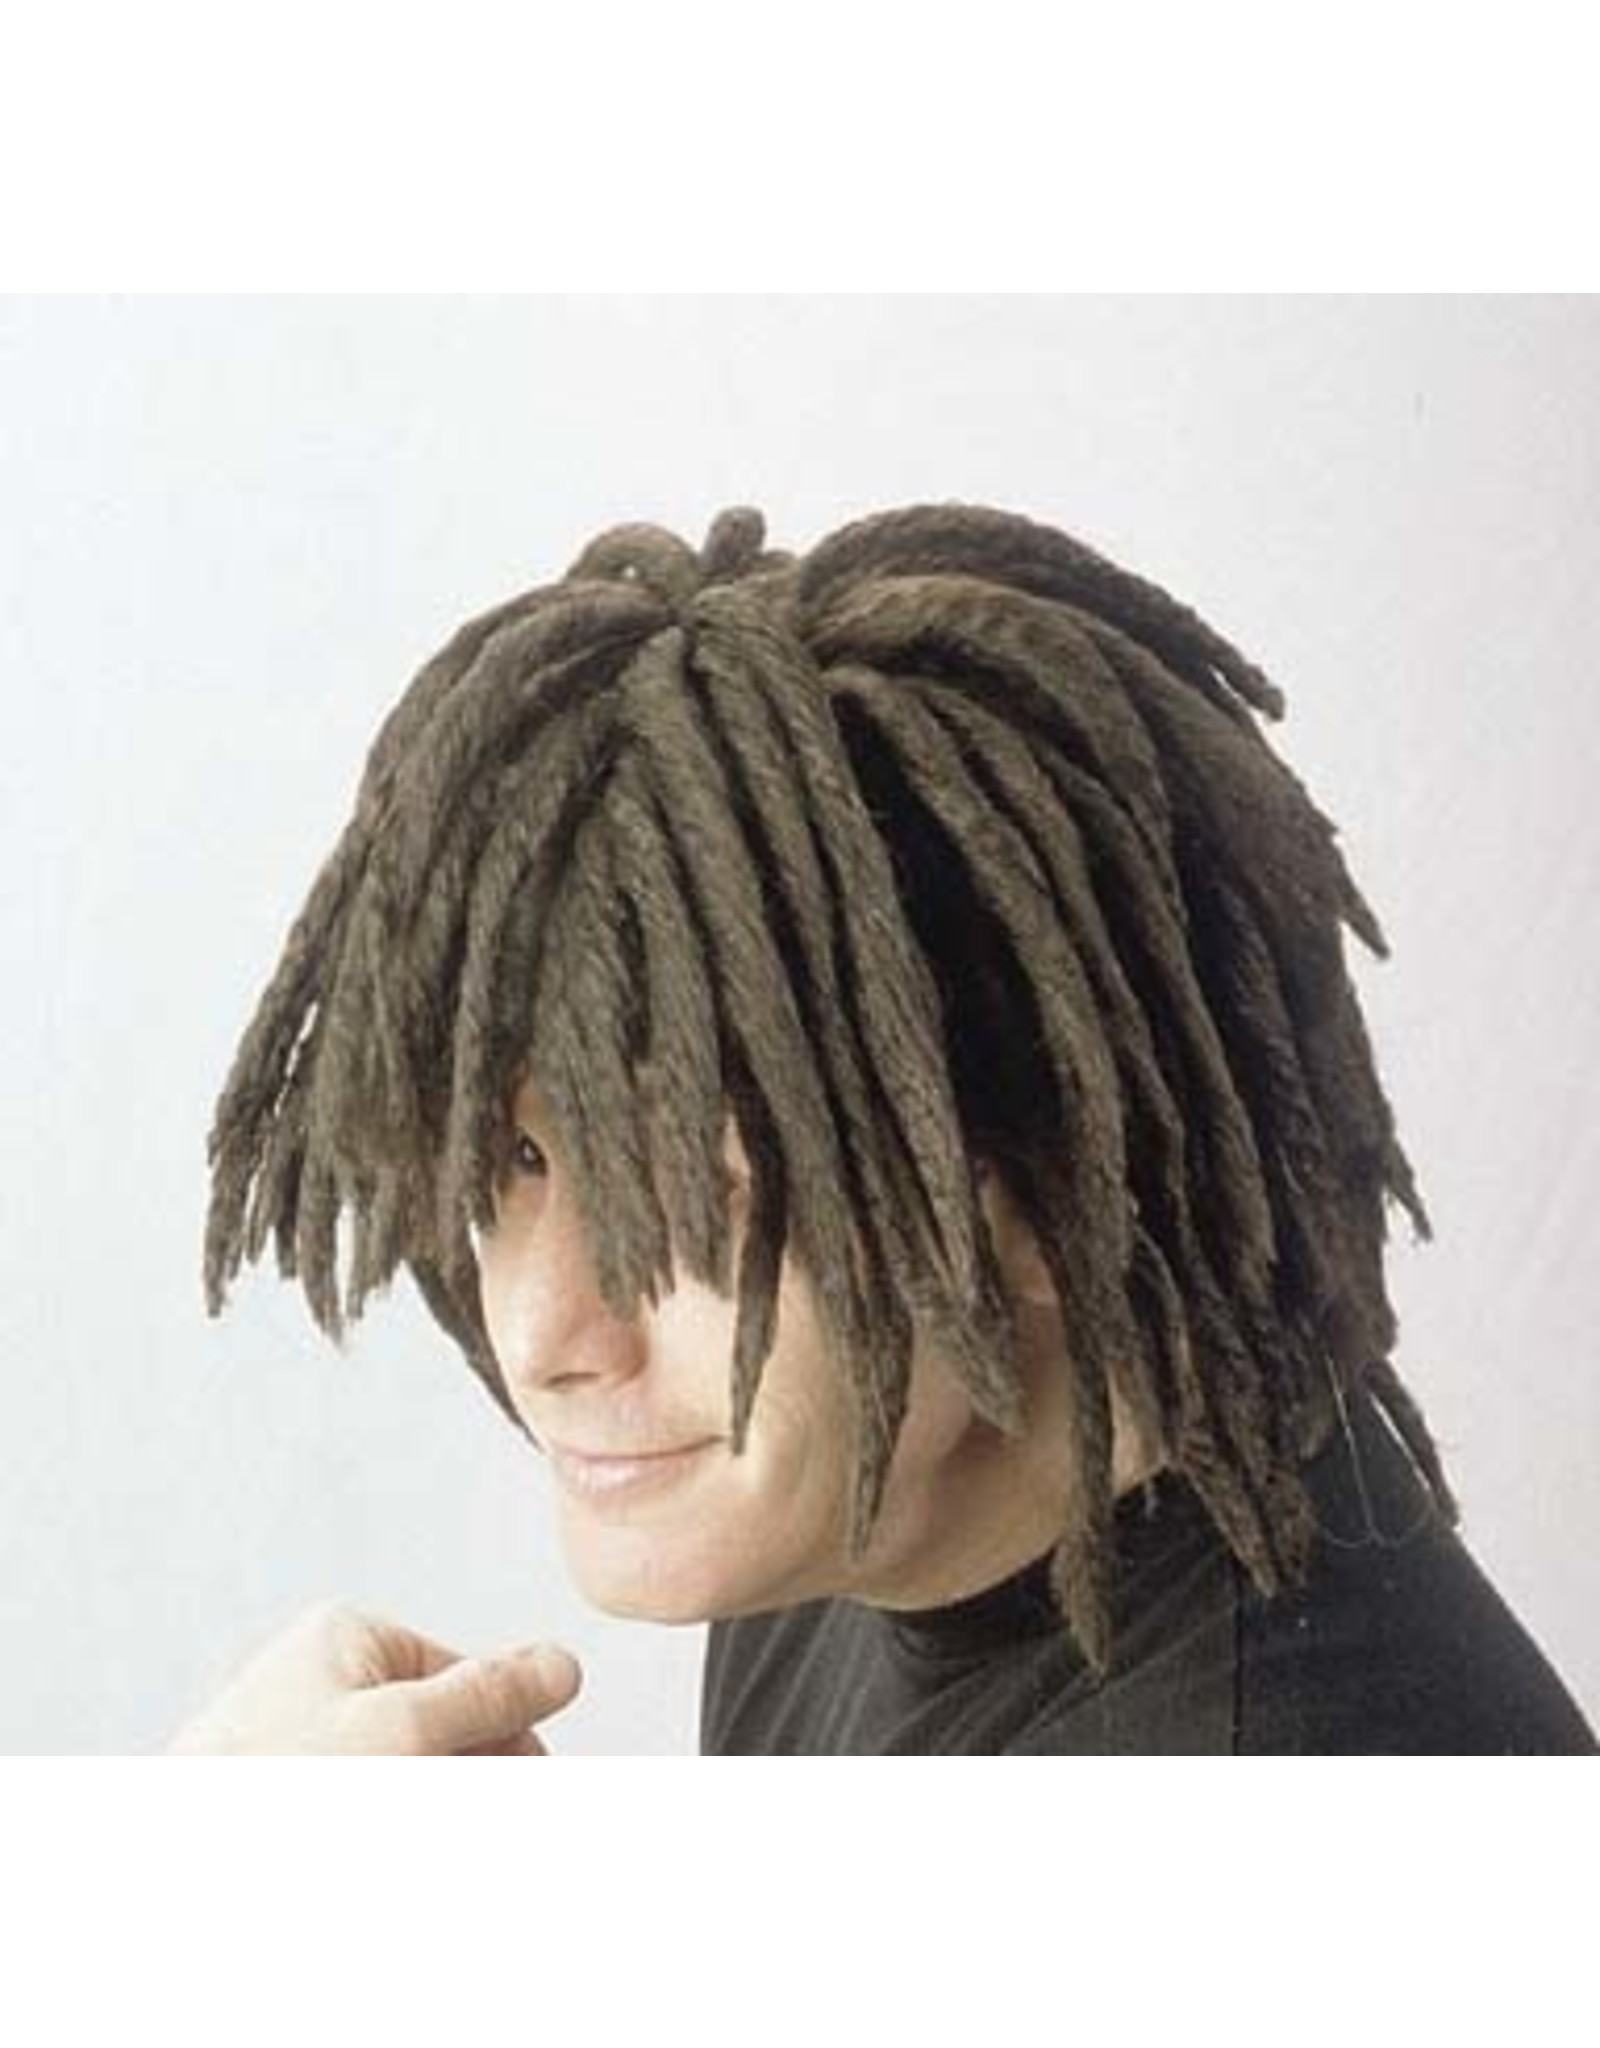 HM Smallwares Dreadlocks Wig